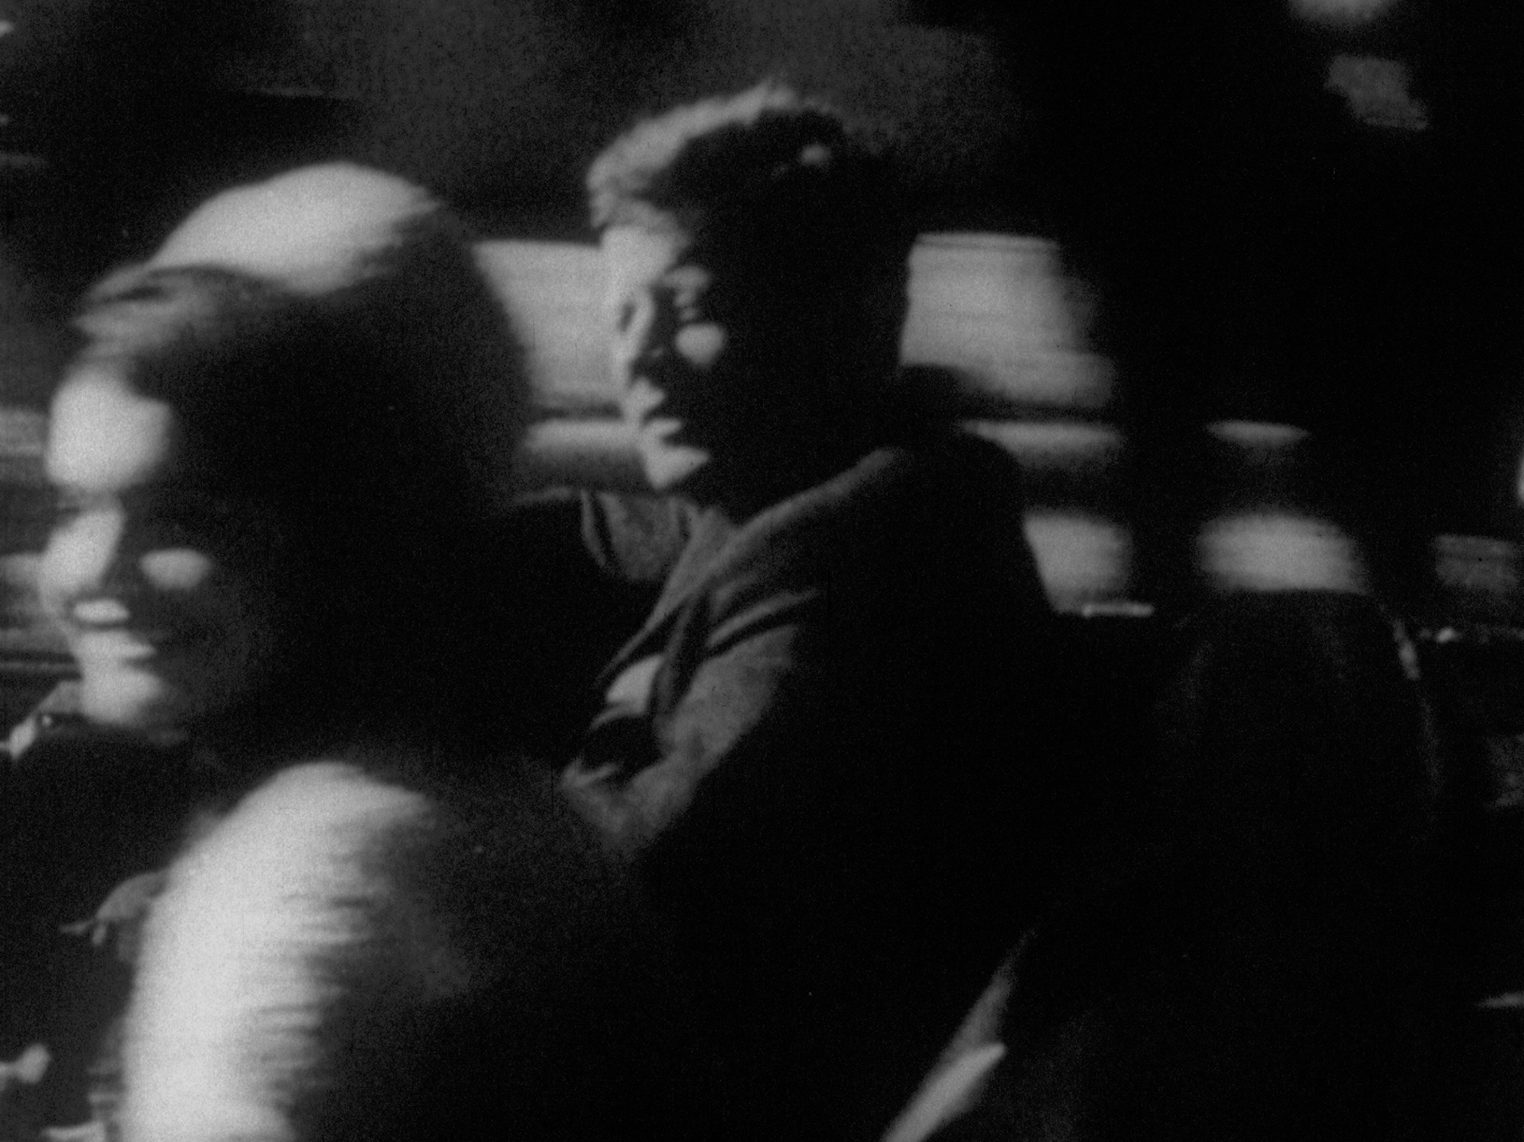 REPORT 1963-67, 16mm to 35mm blow-up, b&w/sound, 13min